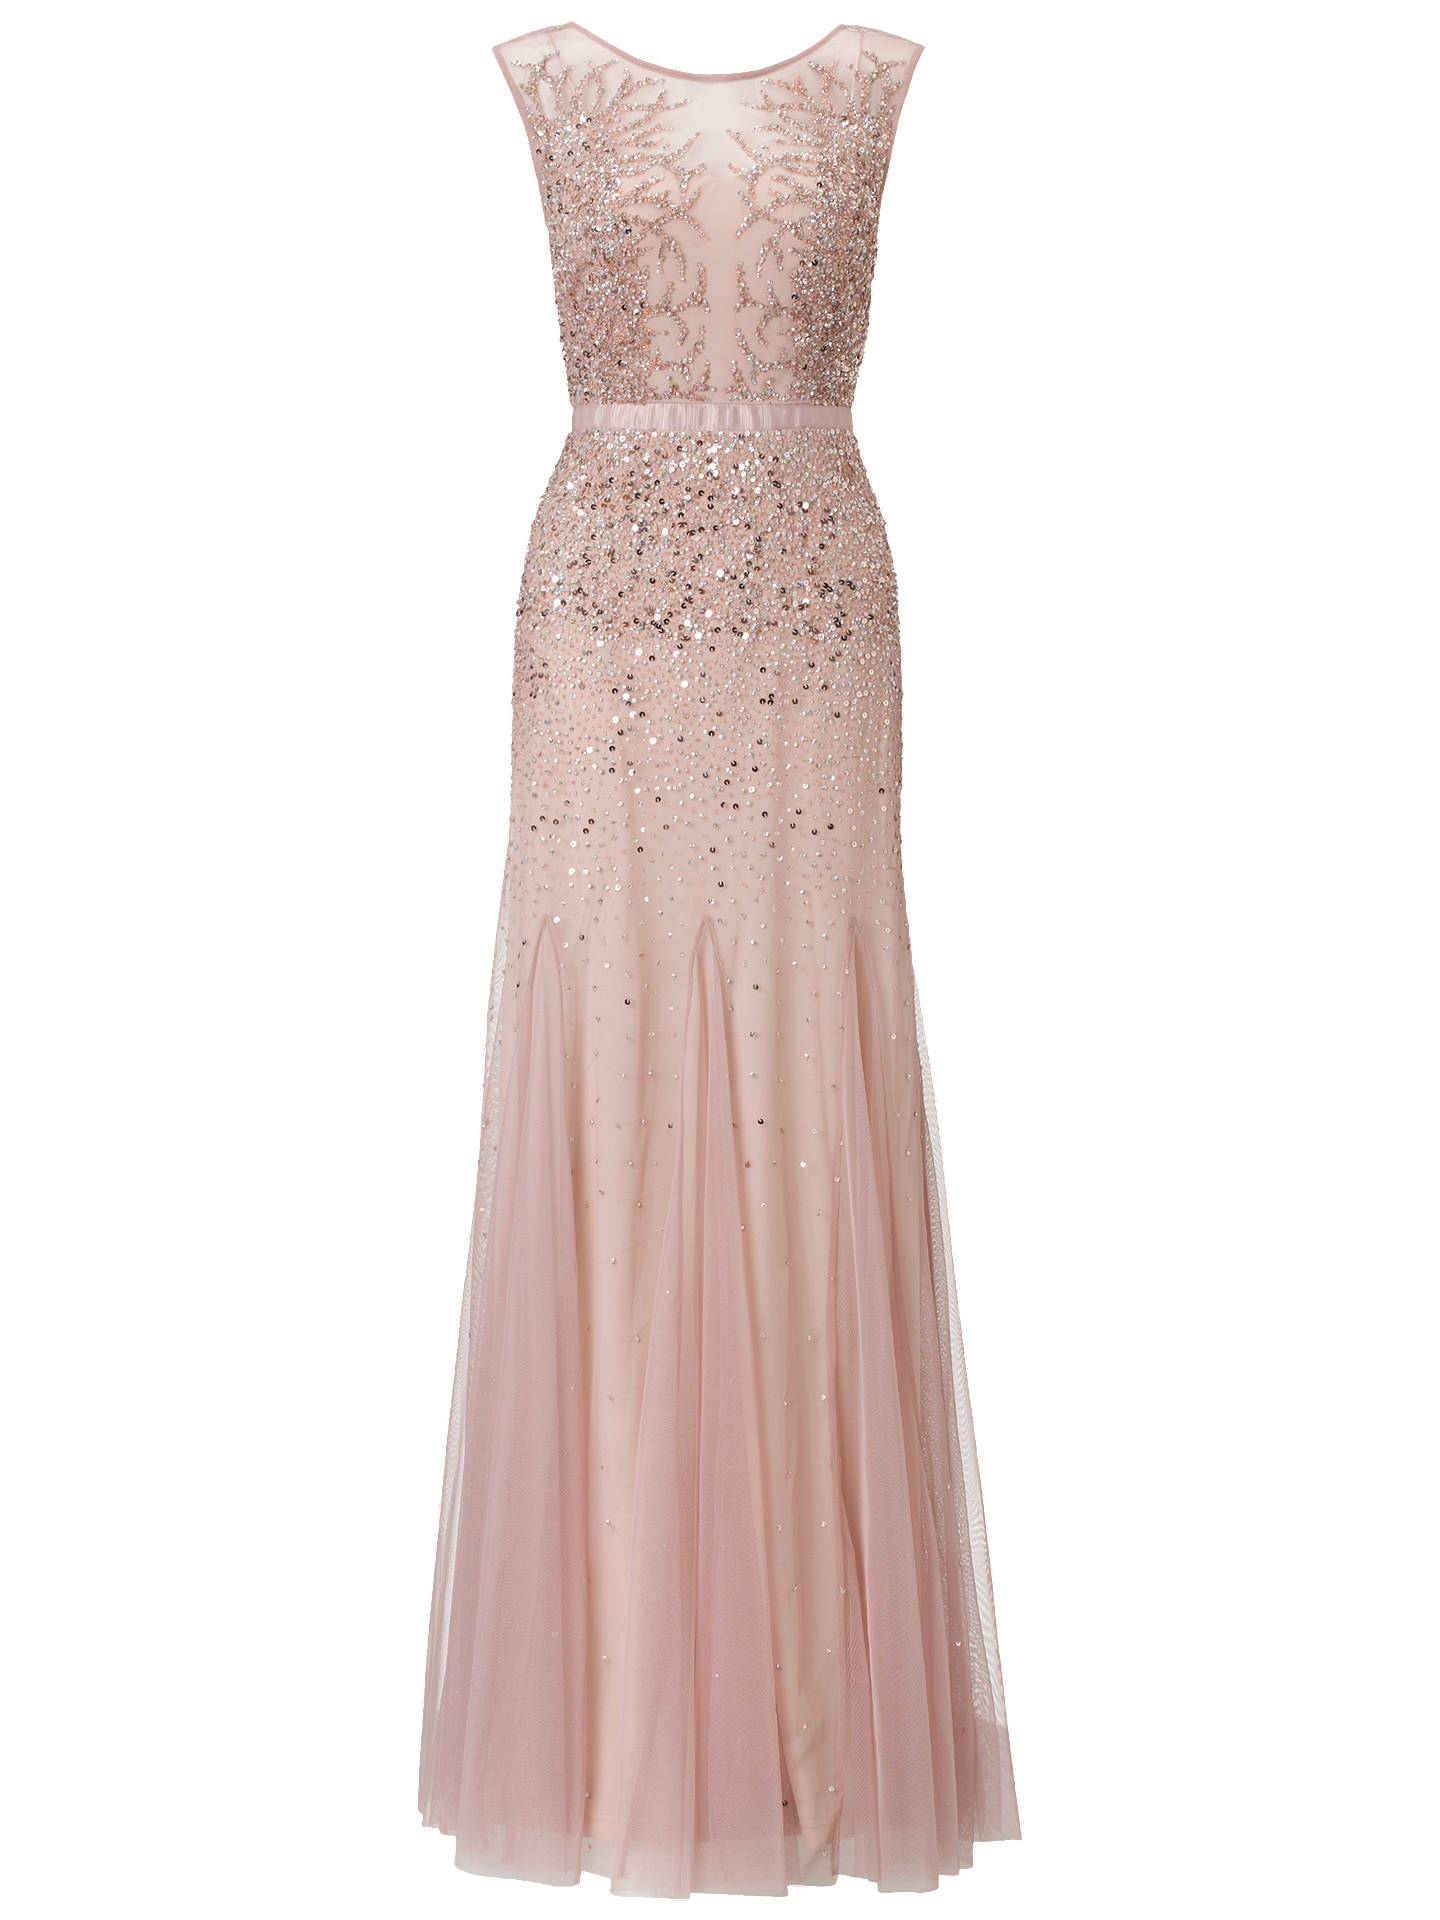 petite-long-evening-gowns